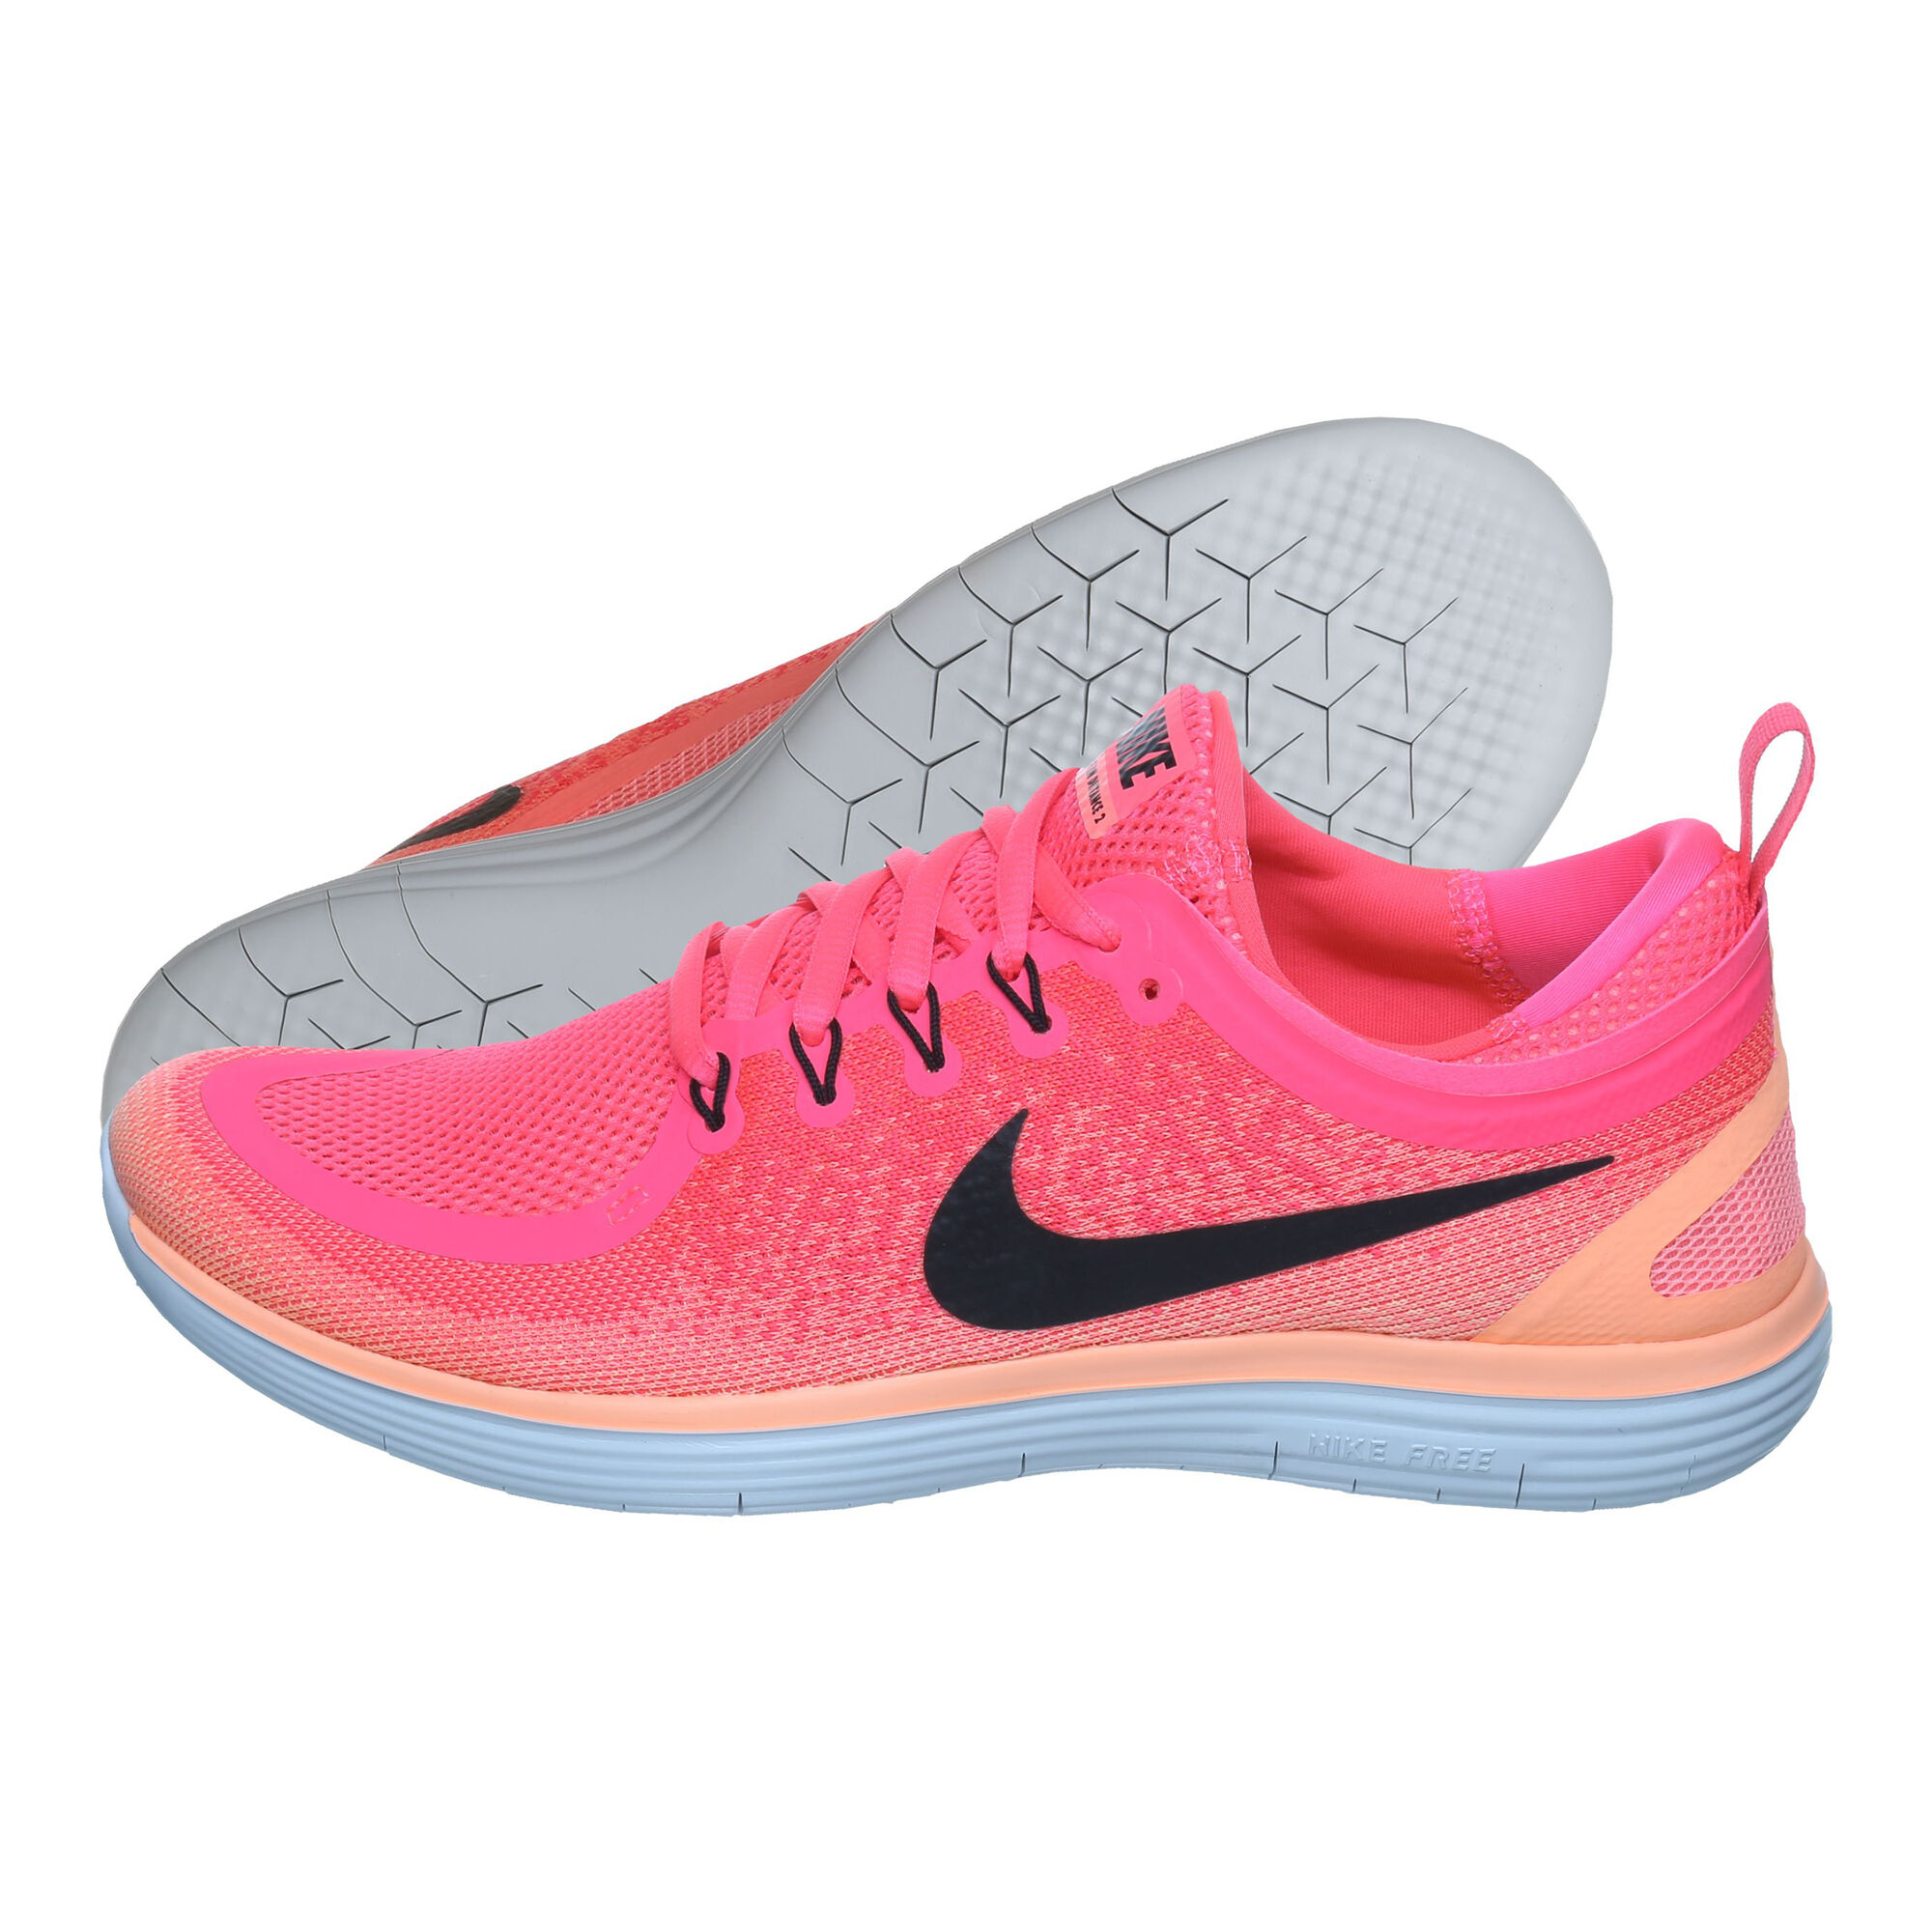 91089cabf22a ... Nike  Nike  Nike  Nike  Nike  Nike. Nike Free RN Distance ...